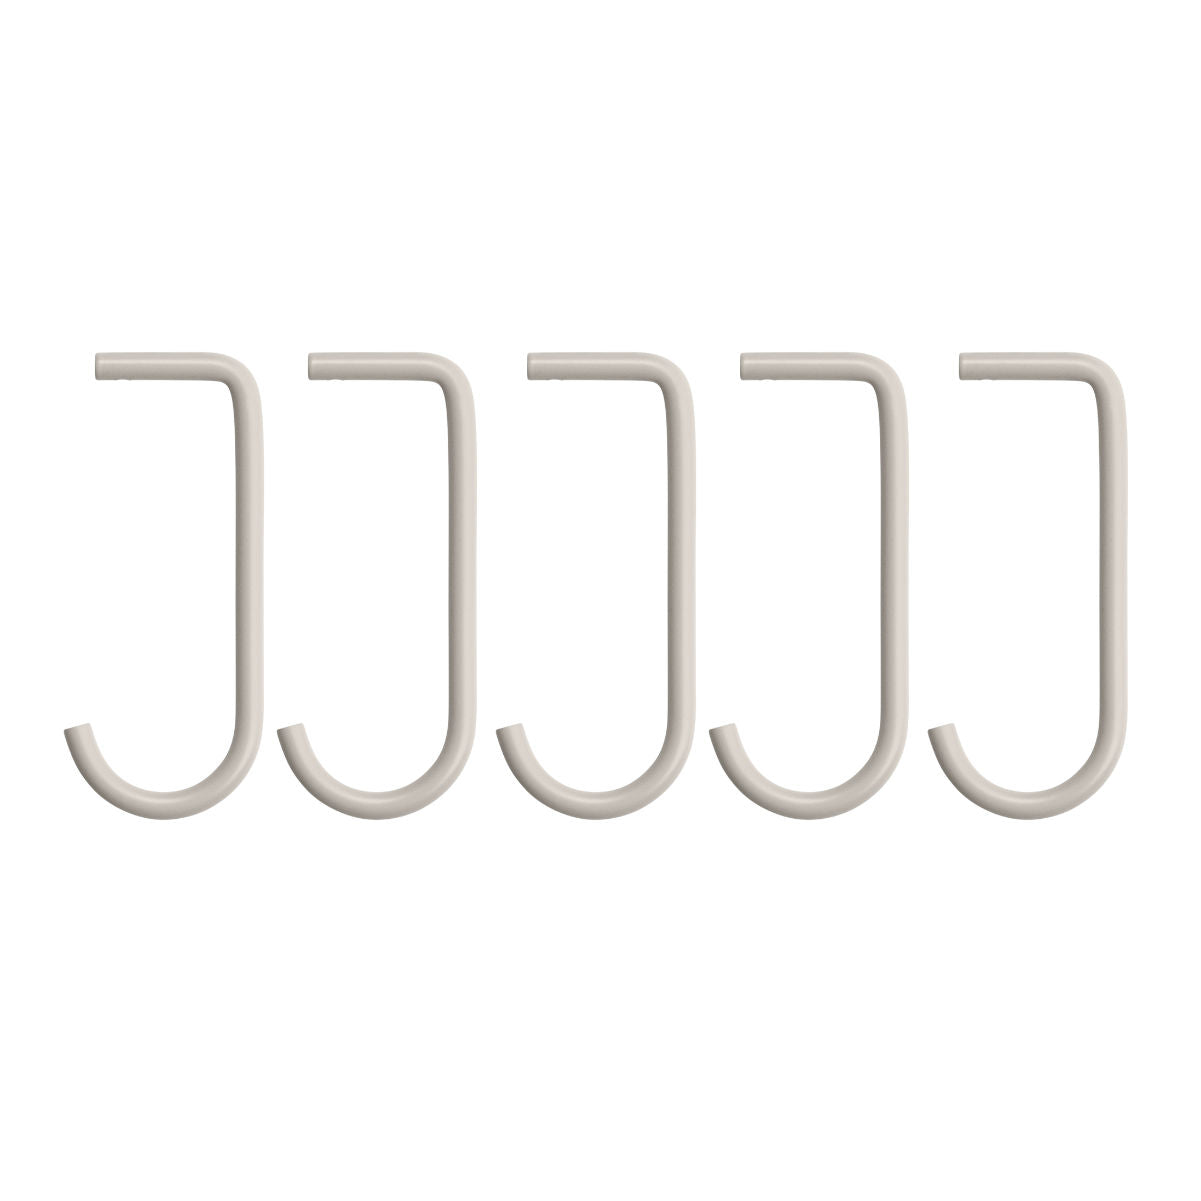 String Shelving System Metal Hook J, 5-pack